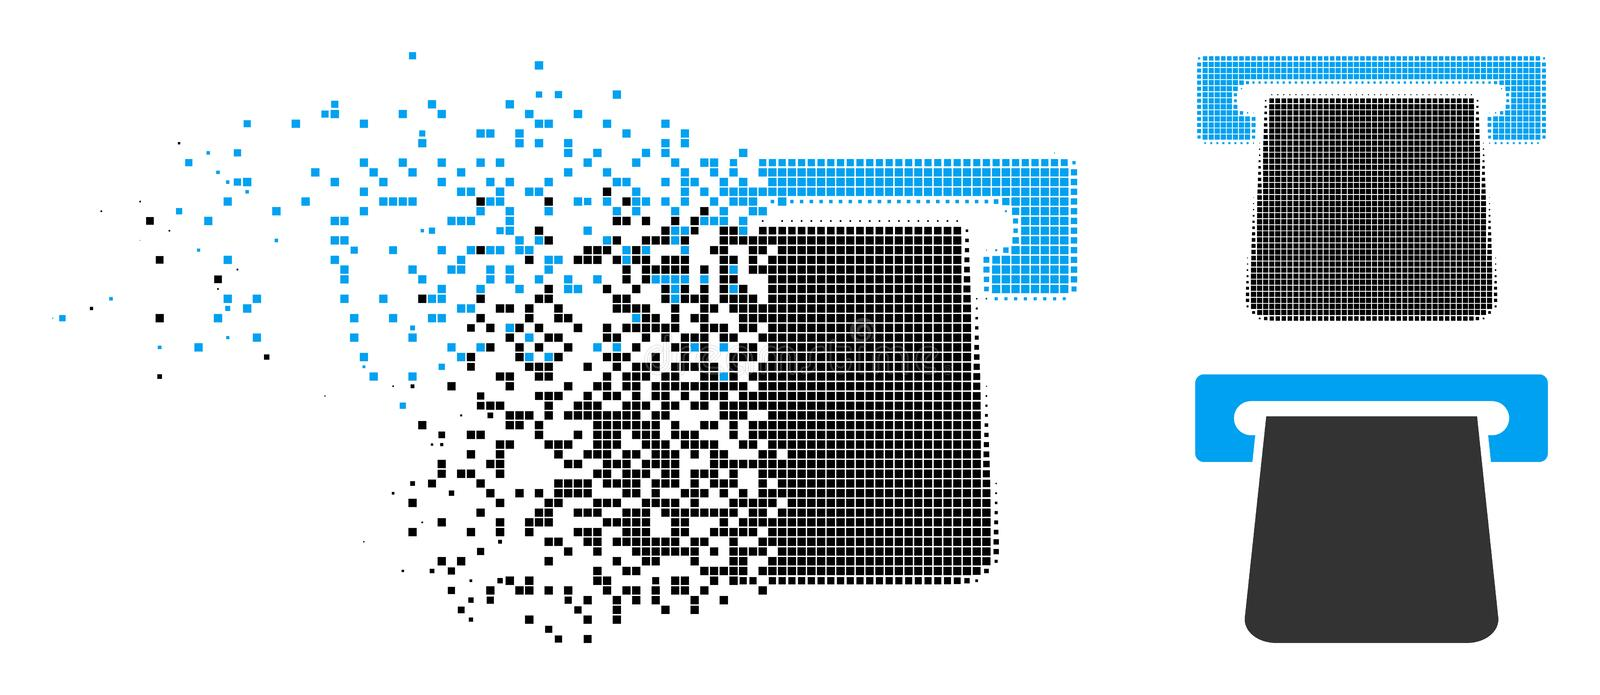 Disintegrating Dot Halftone Bank Terminal Icon. Bank terminal icon in fragmented, pixelated halftone and solid variants. Cells are composed into vector vector illustration